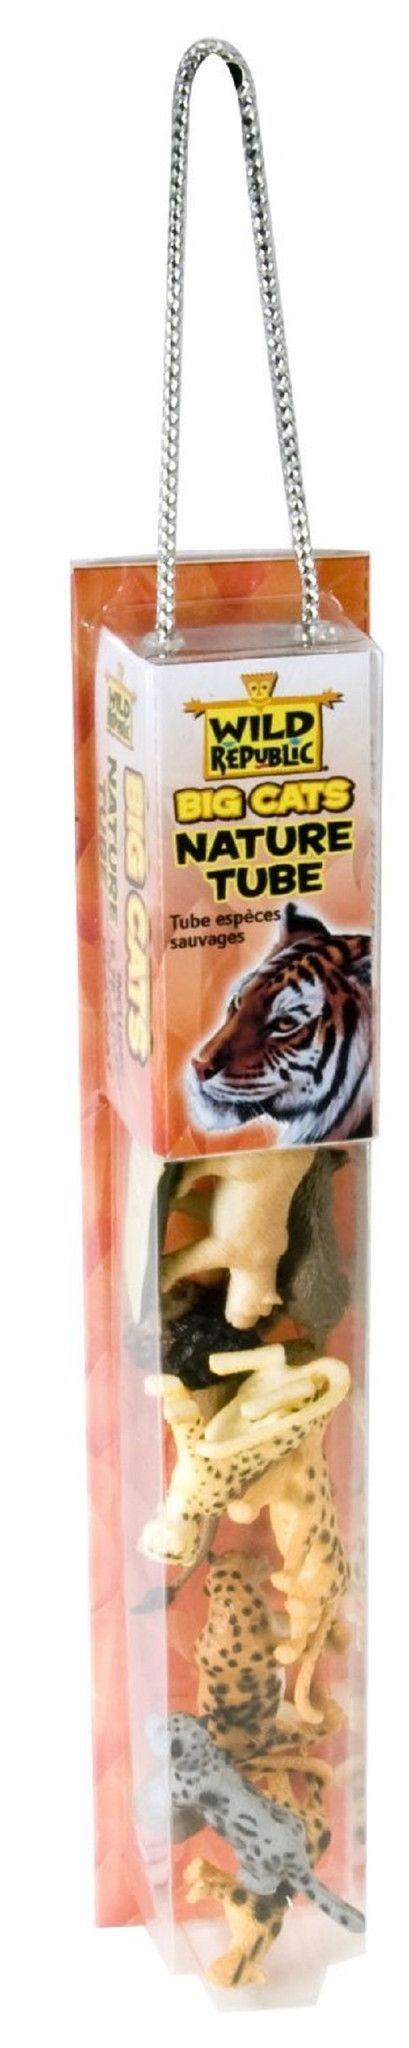 Big Cats Nature Tube with Play Mat by Wild Republic